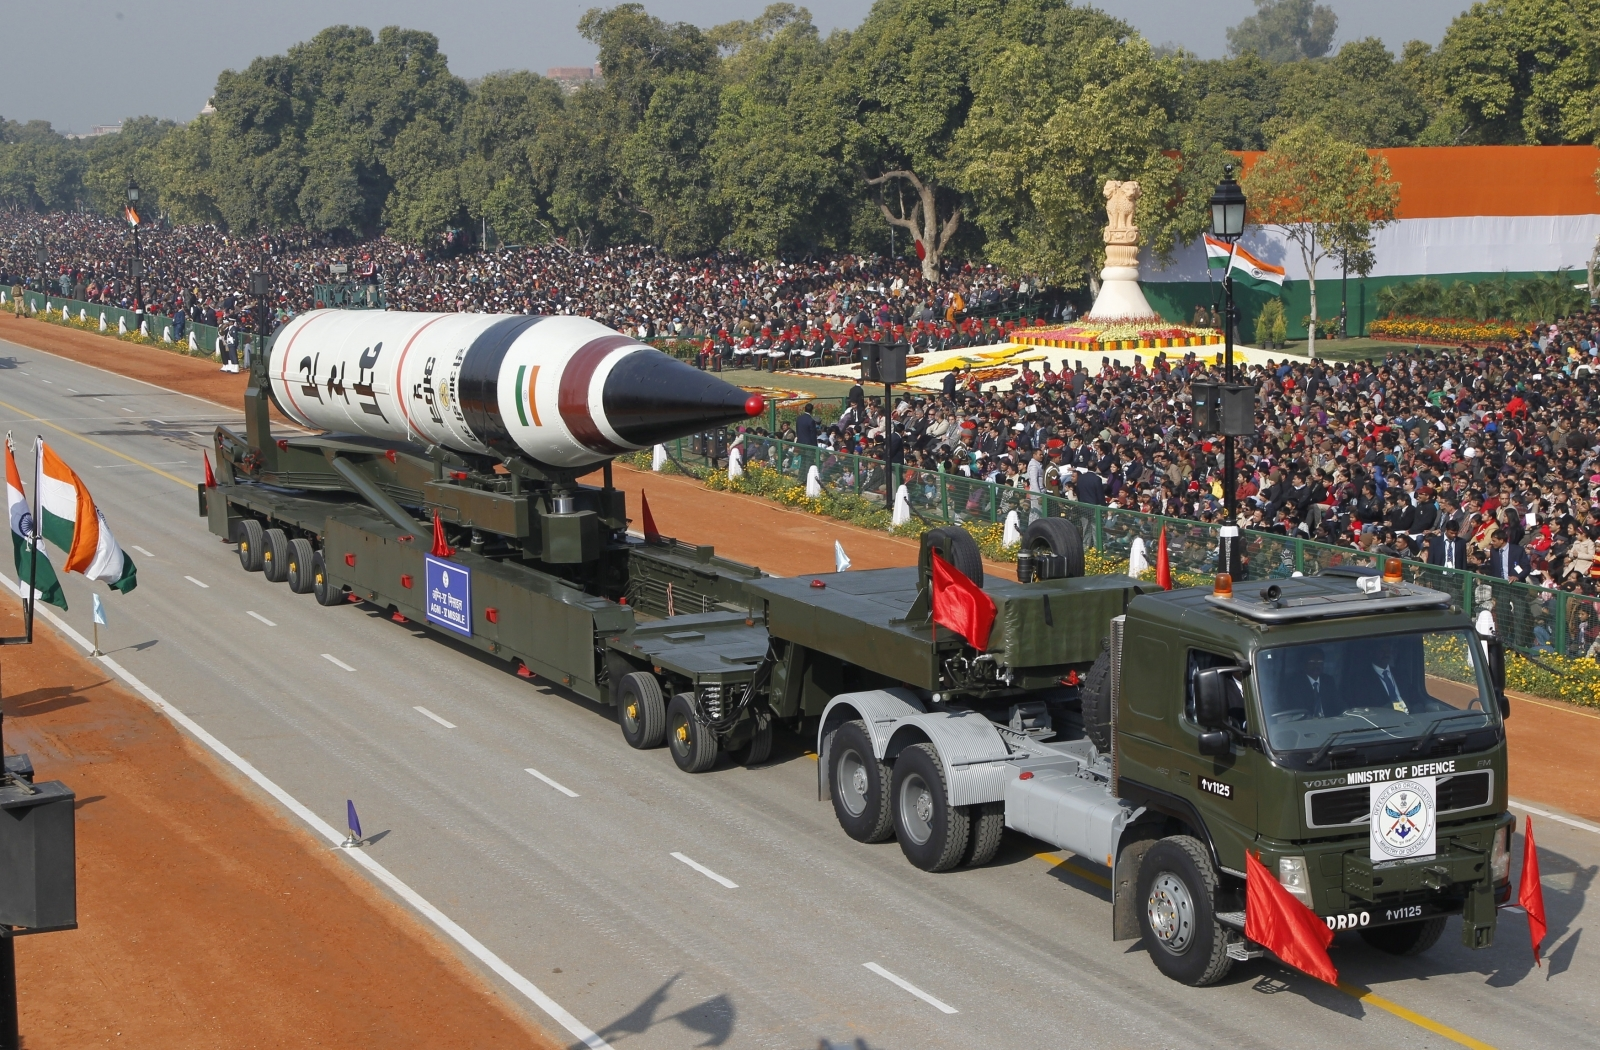 India Agni missile test